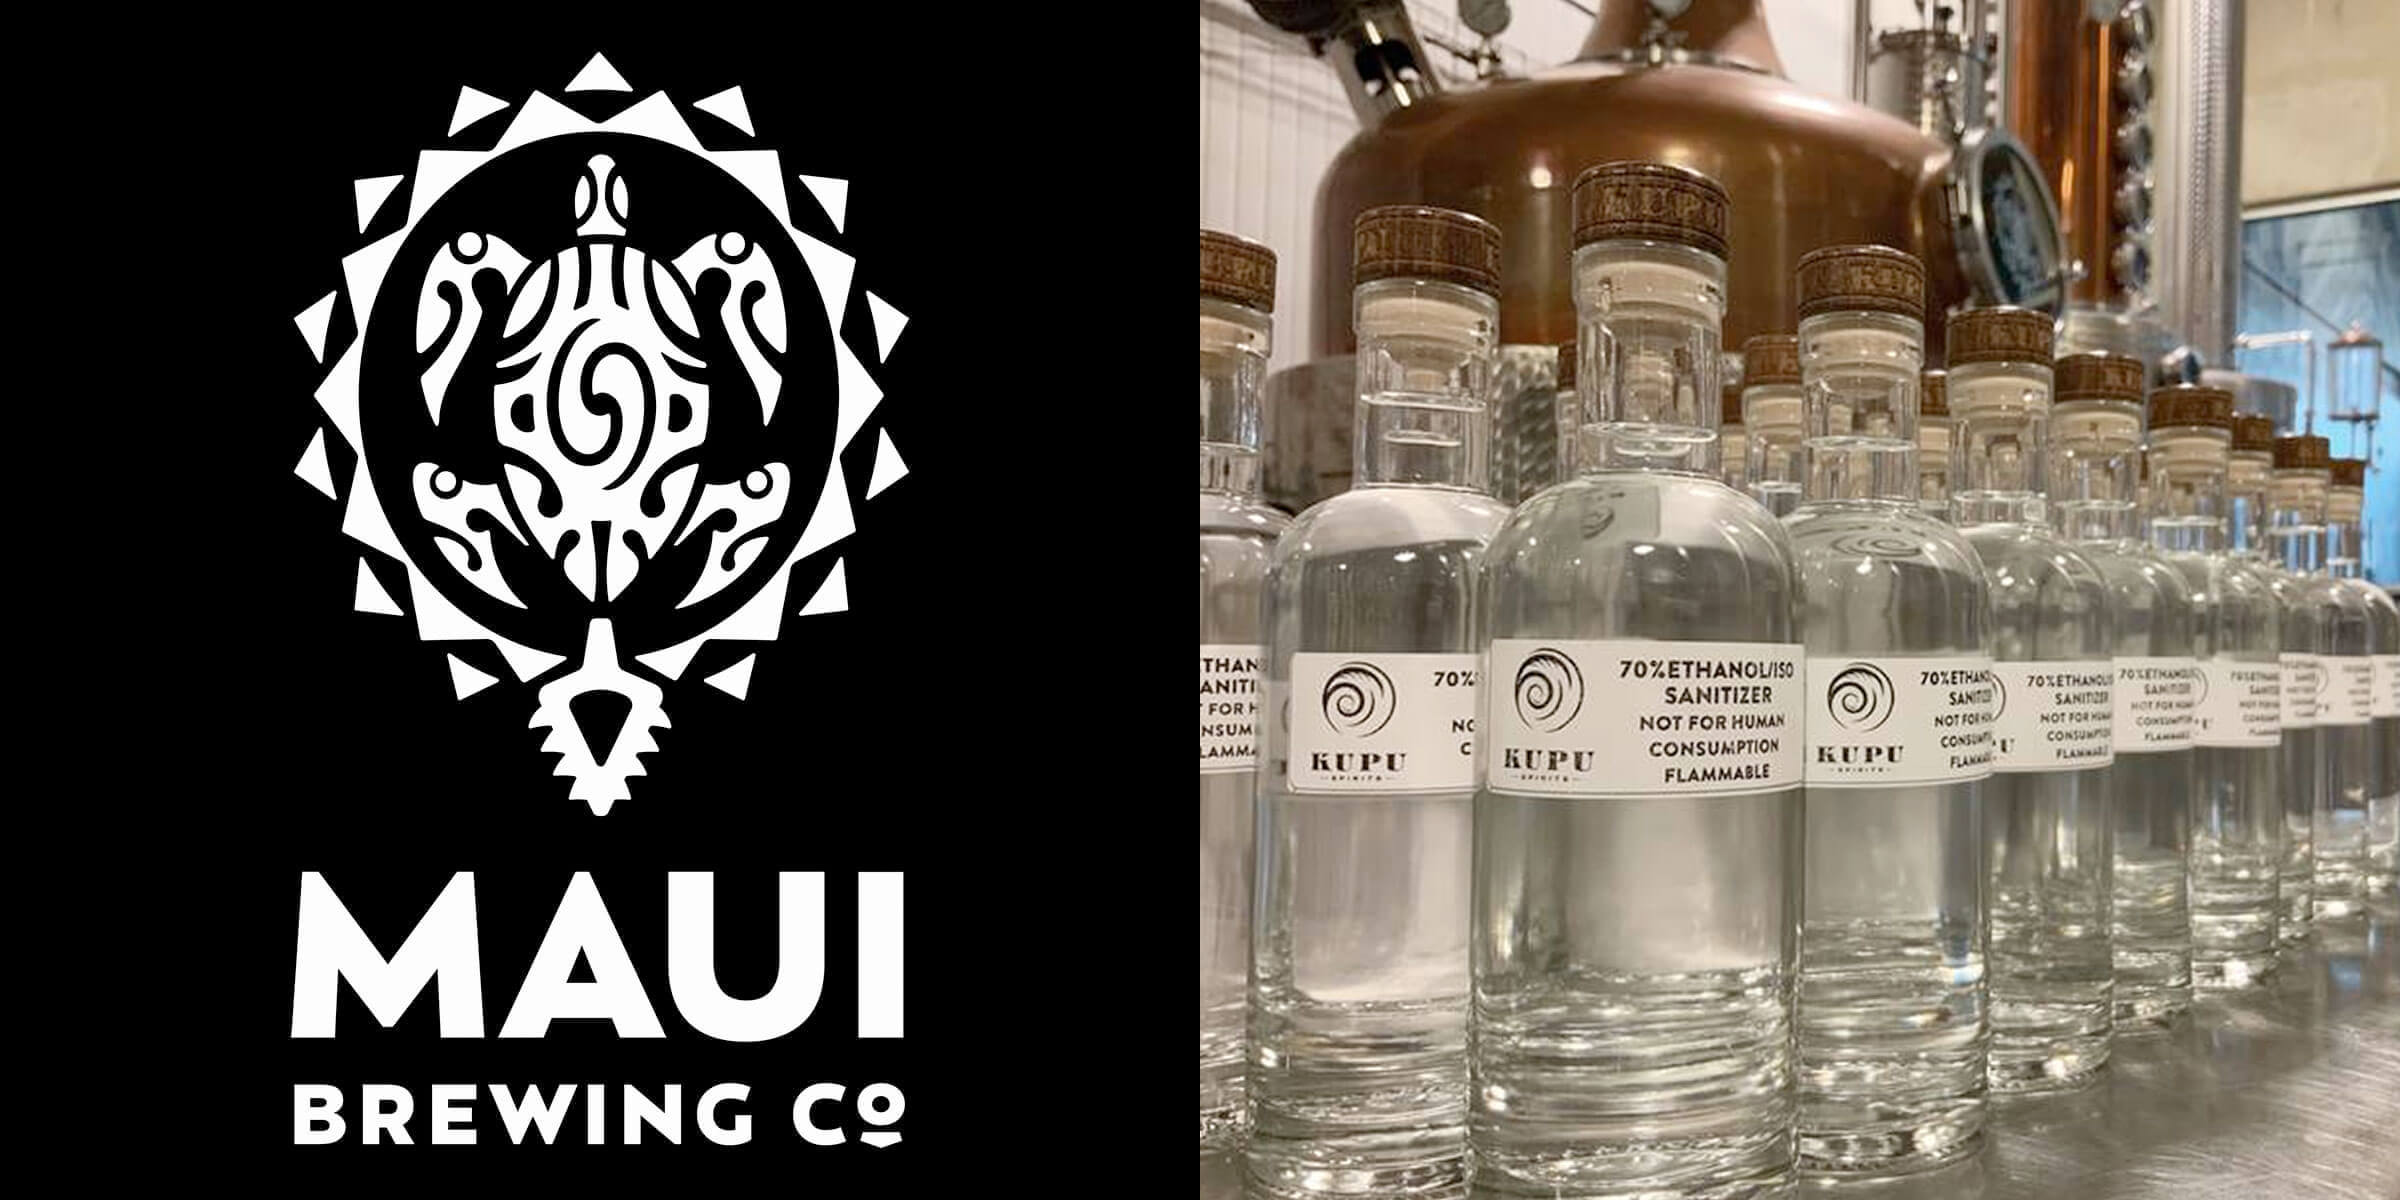 Maui Brewing Company is being investigated by the Maui County Liquor Control Commission for giving away the product with purchase to customers.